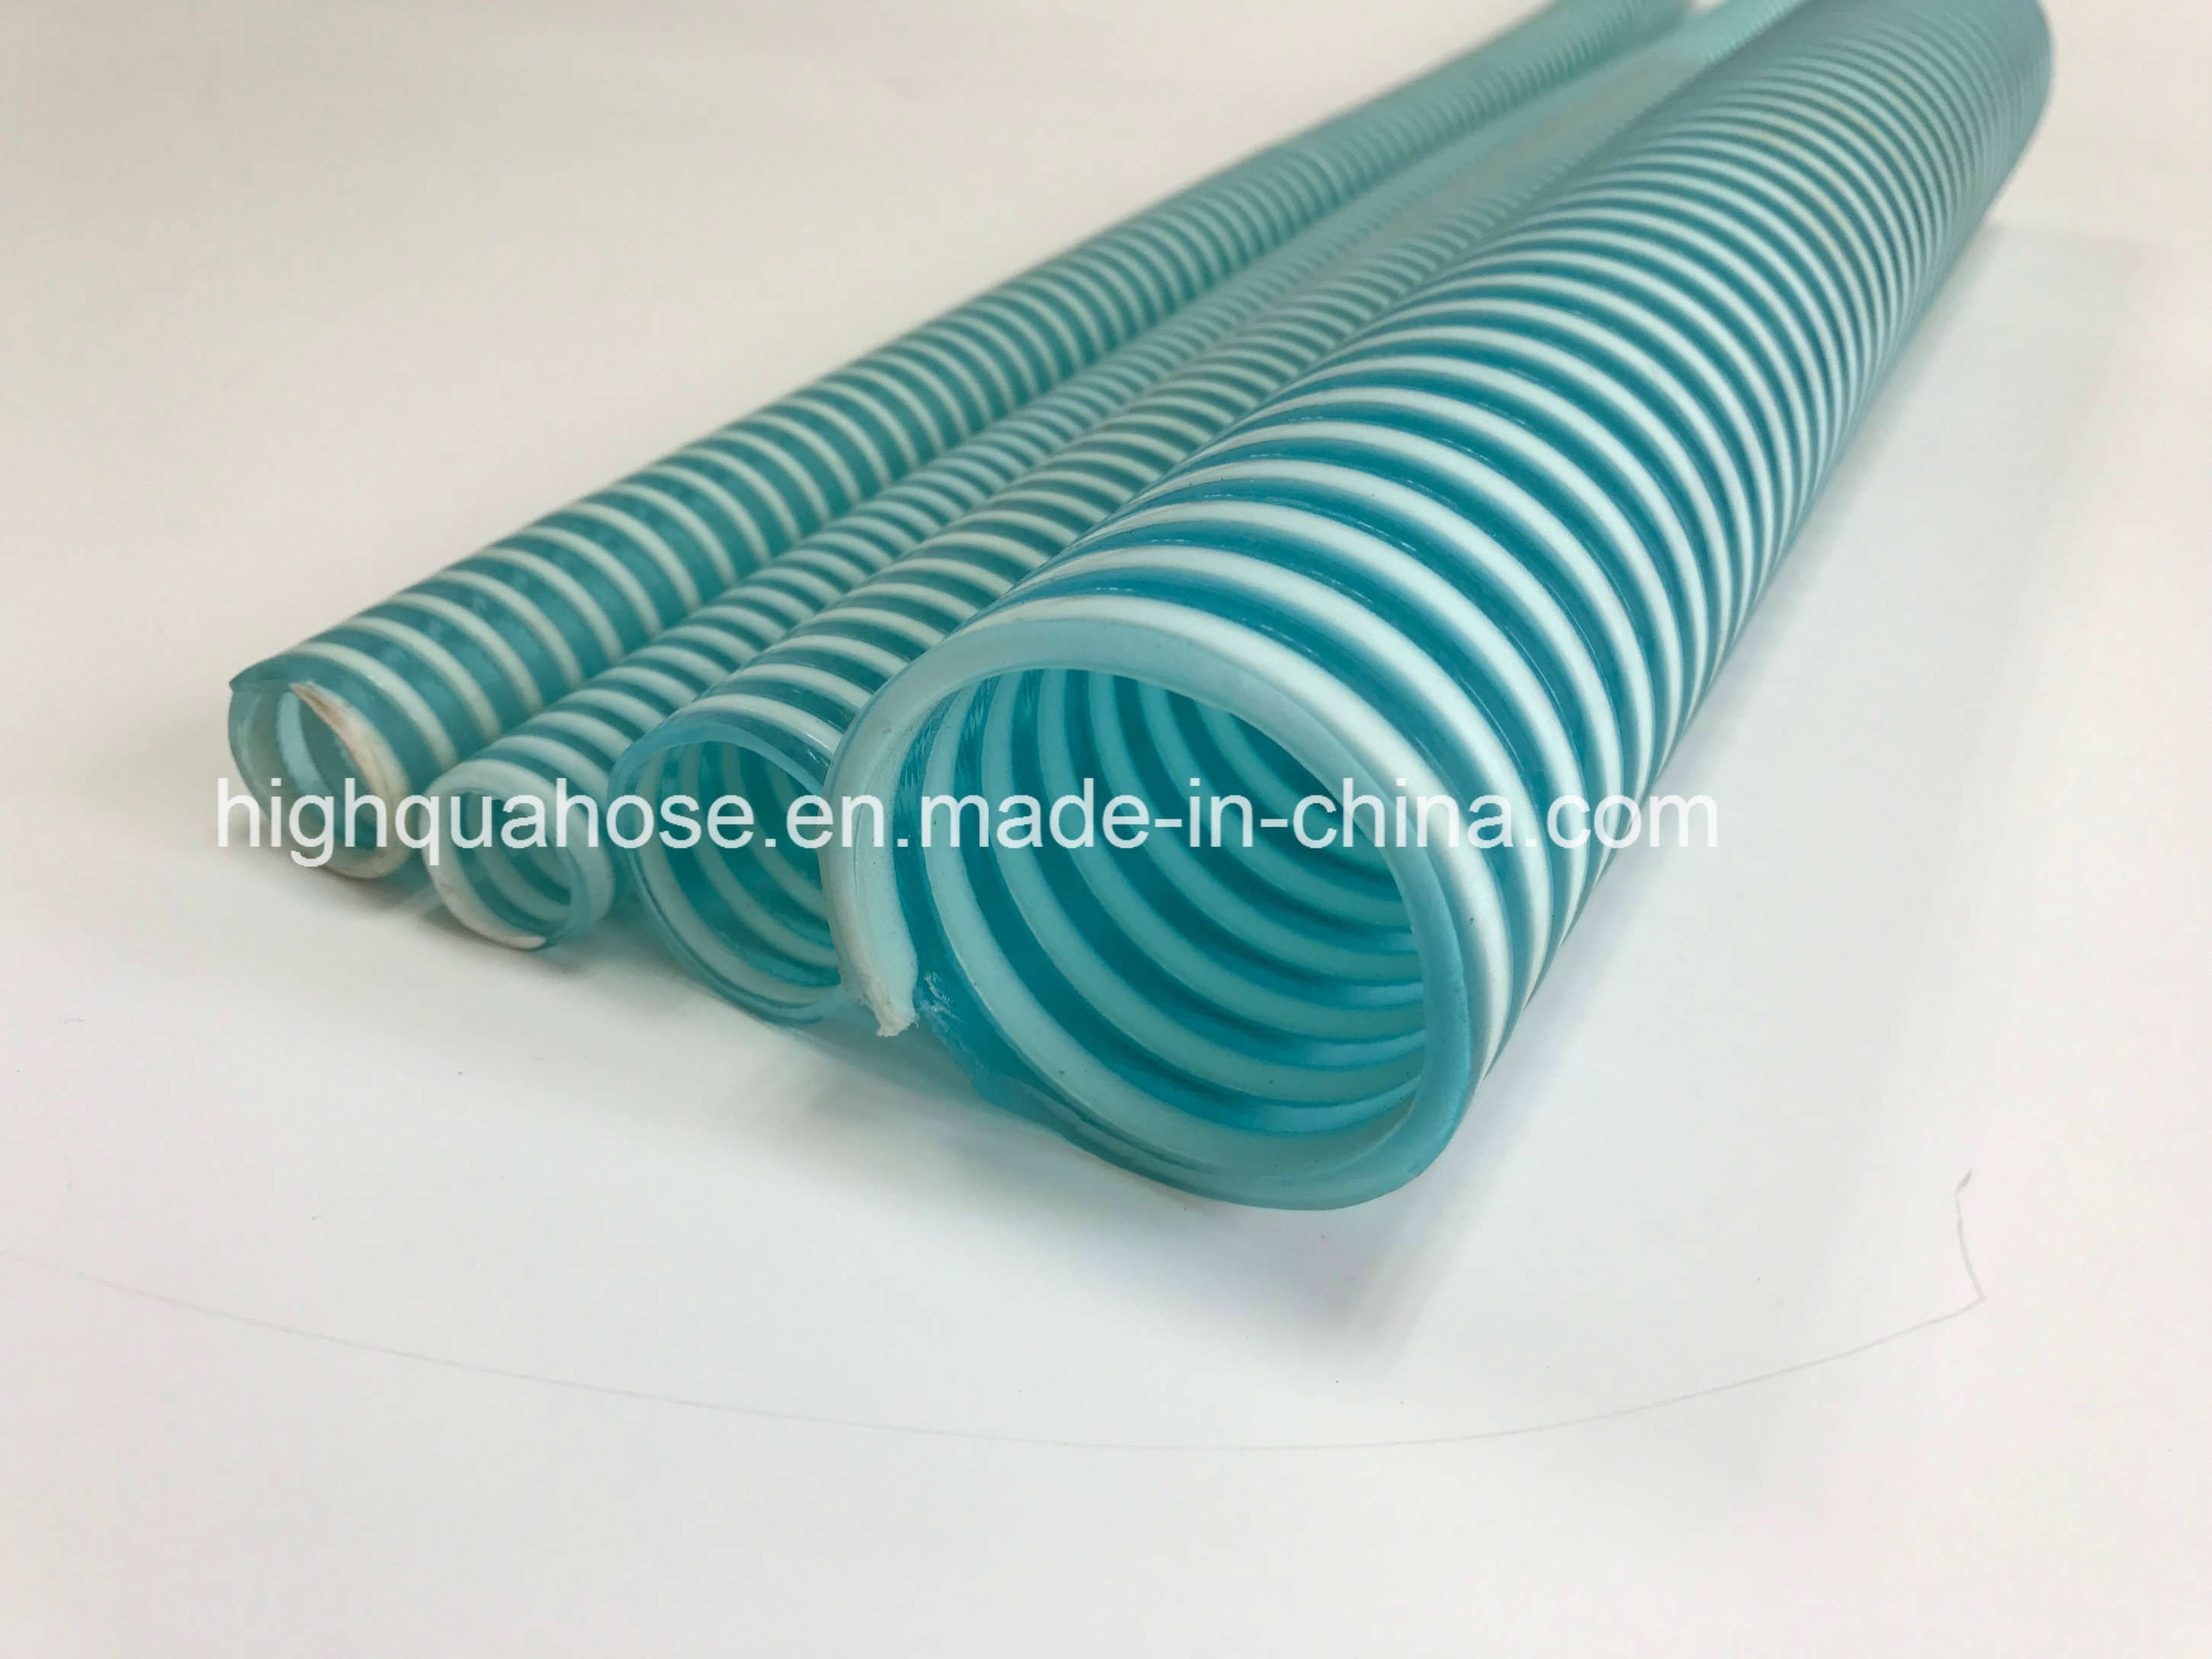 Chinese Manufacture Flexible Corrugated Spiral PVC Suction Hose